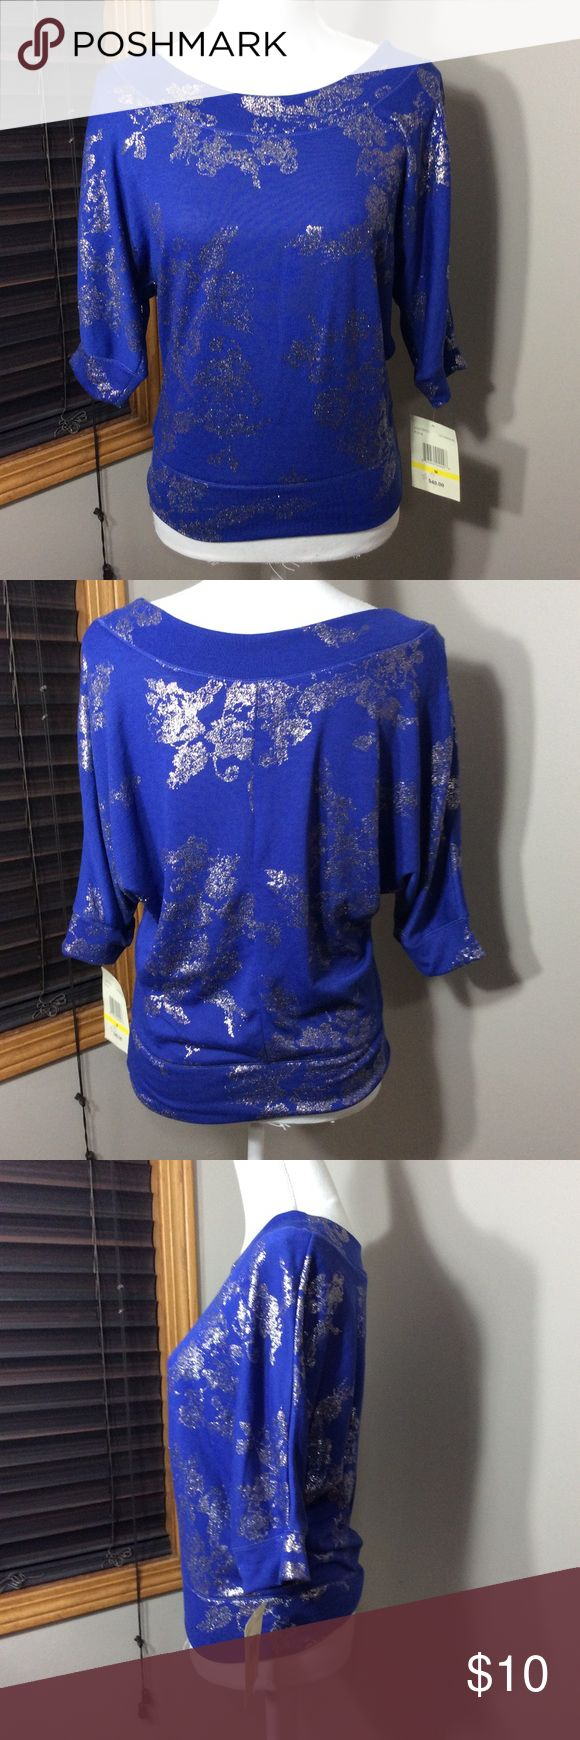 Super cute top Brand new with tags purple & silver batwing top. Bundle for more discount Eyeshadow Tops Blouses